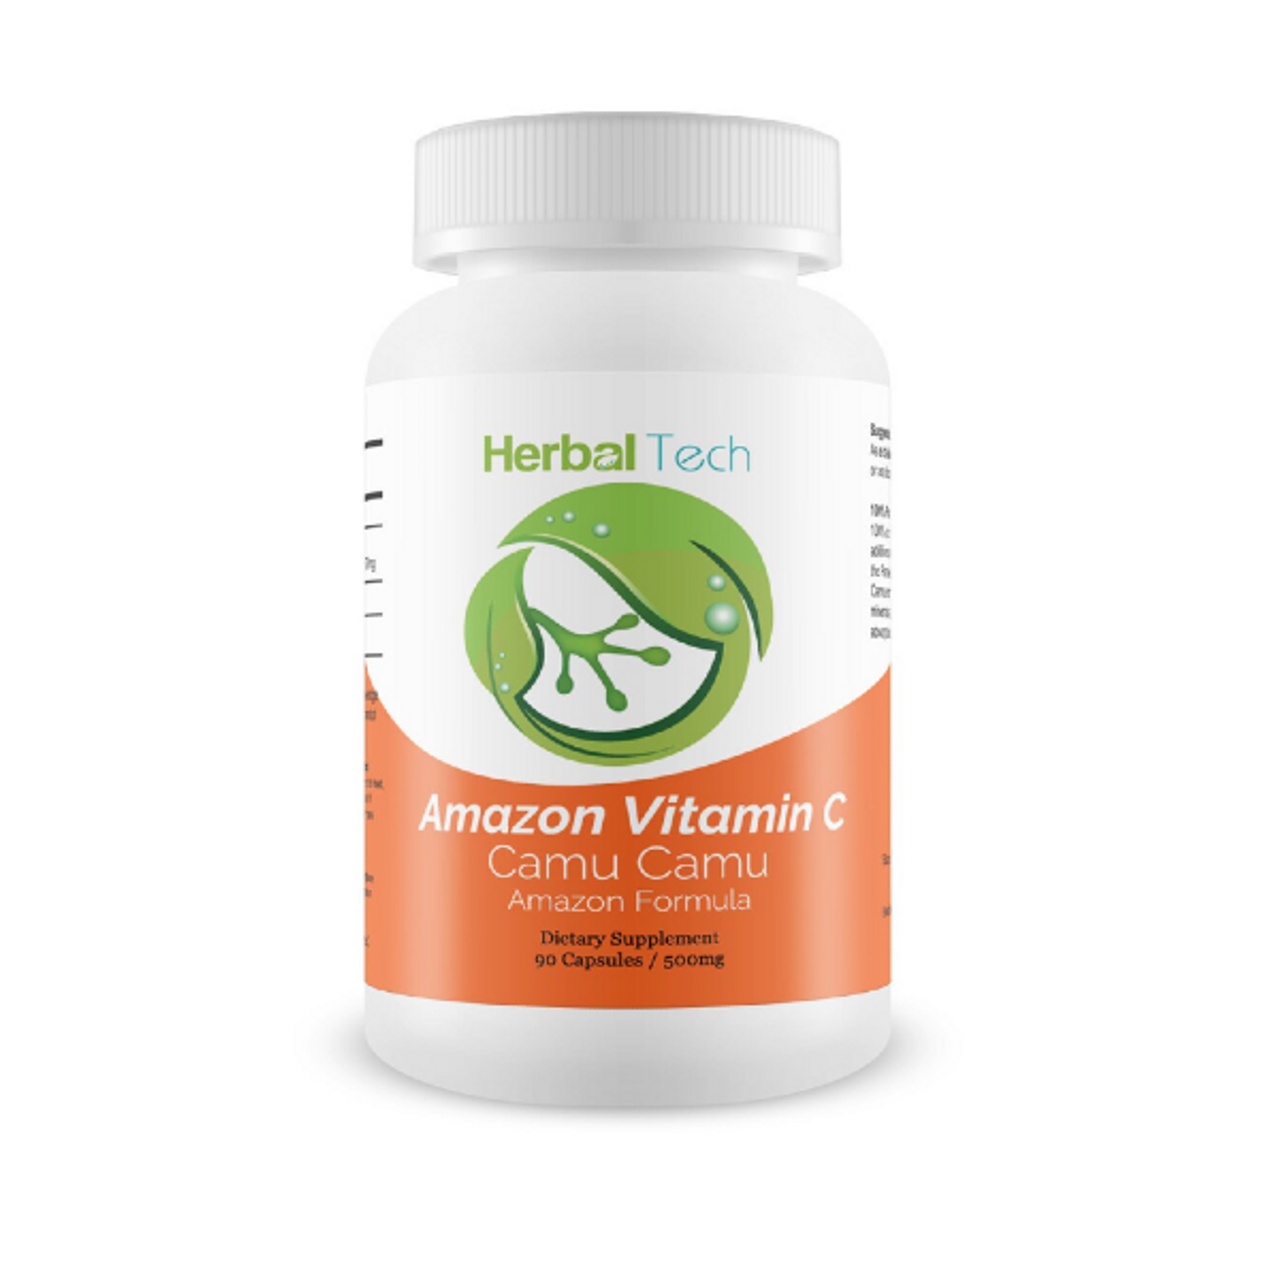 Camu Camu Amazon Vitamin C 500mg